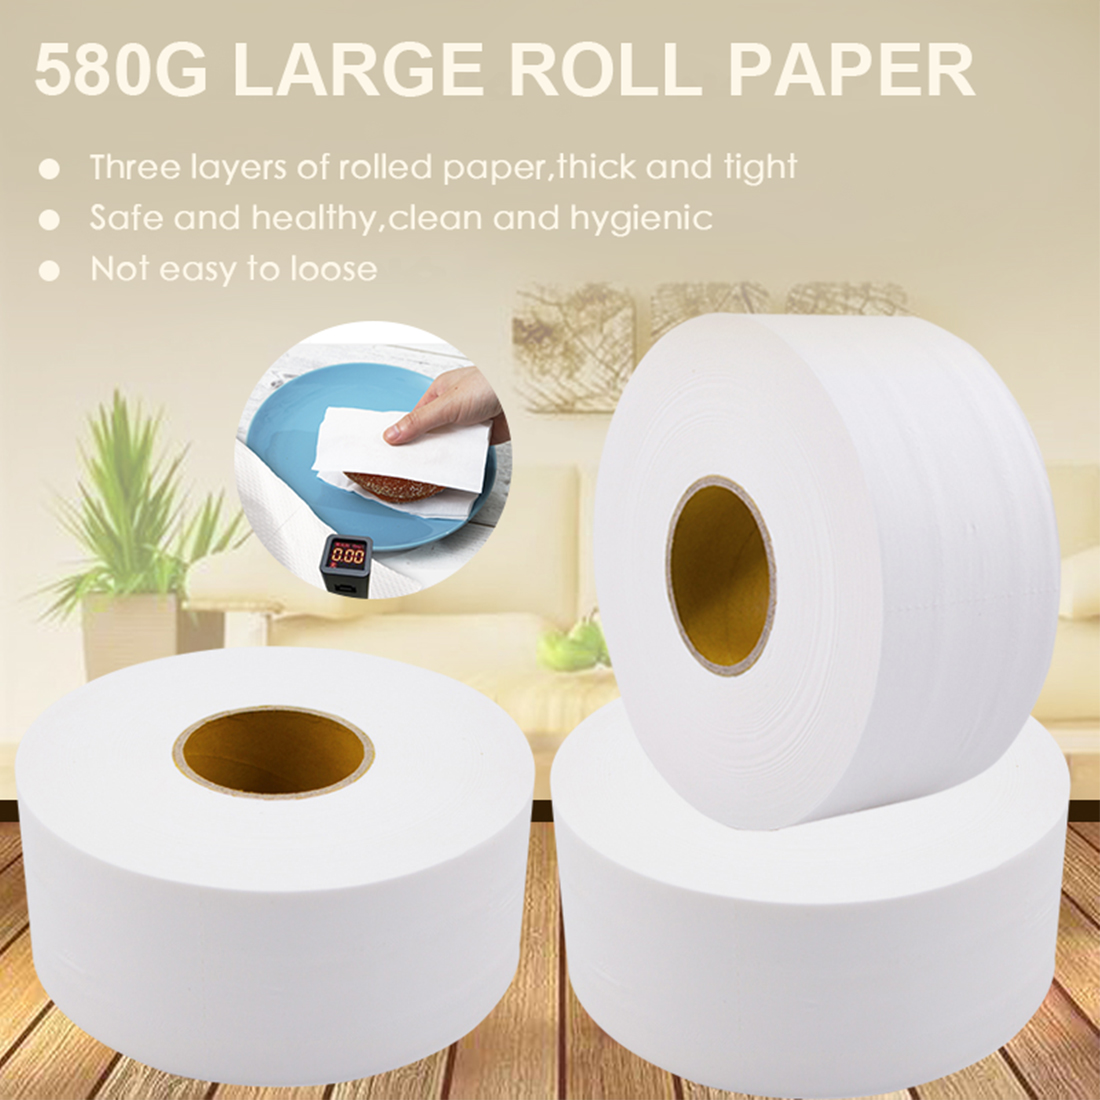 900+ Sheets White Toilet Paper Jumbo Roll Towels Virgin Wood Pulp Adjunct Non-Smell Soft Tissue For Home Public Hotel